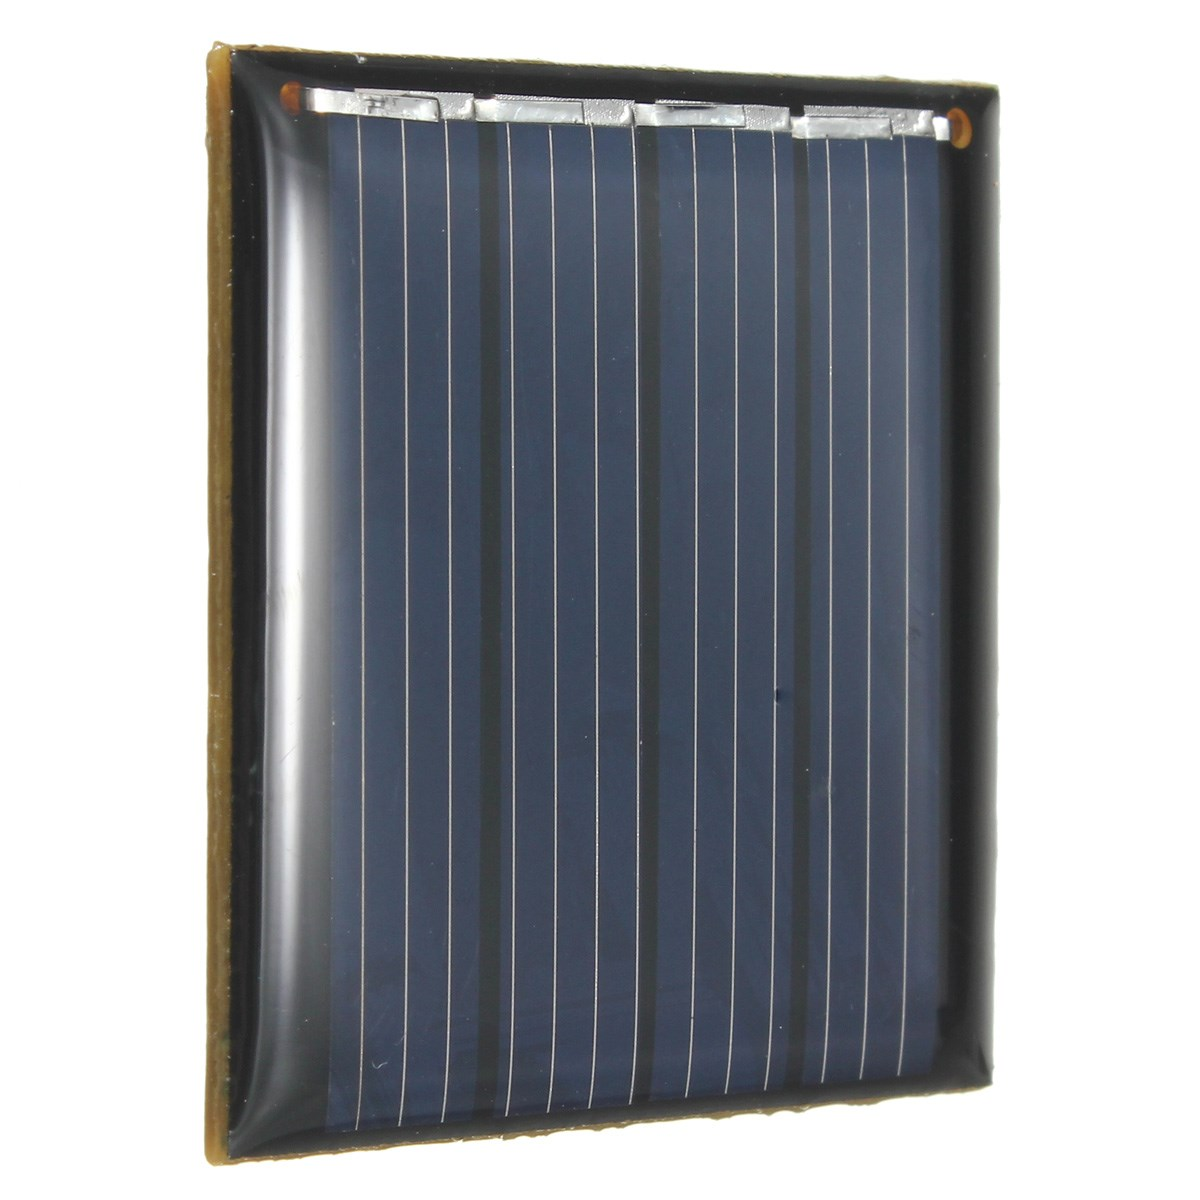 Hot Sale 2V 0.14W 70MAh Polycrystalline Silicon Epoxy Solar Panel DIY Powered Models Mini Solar Cells Battery Phone Charger